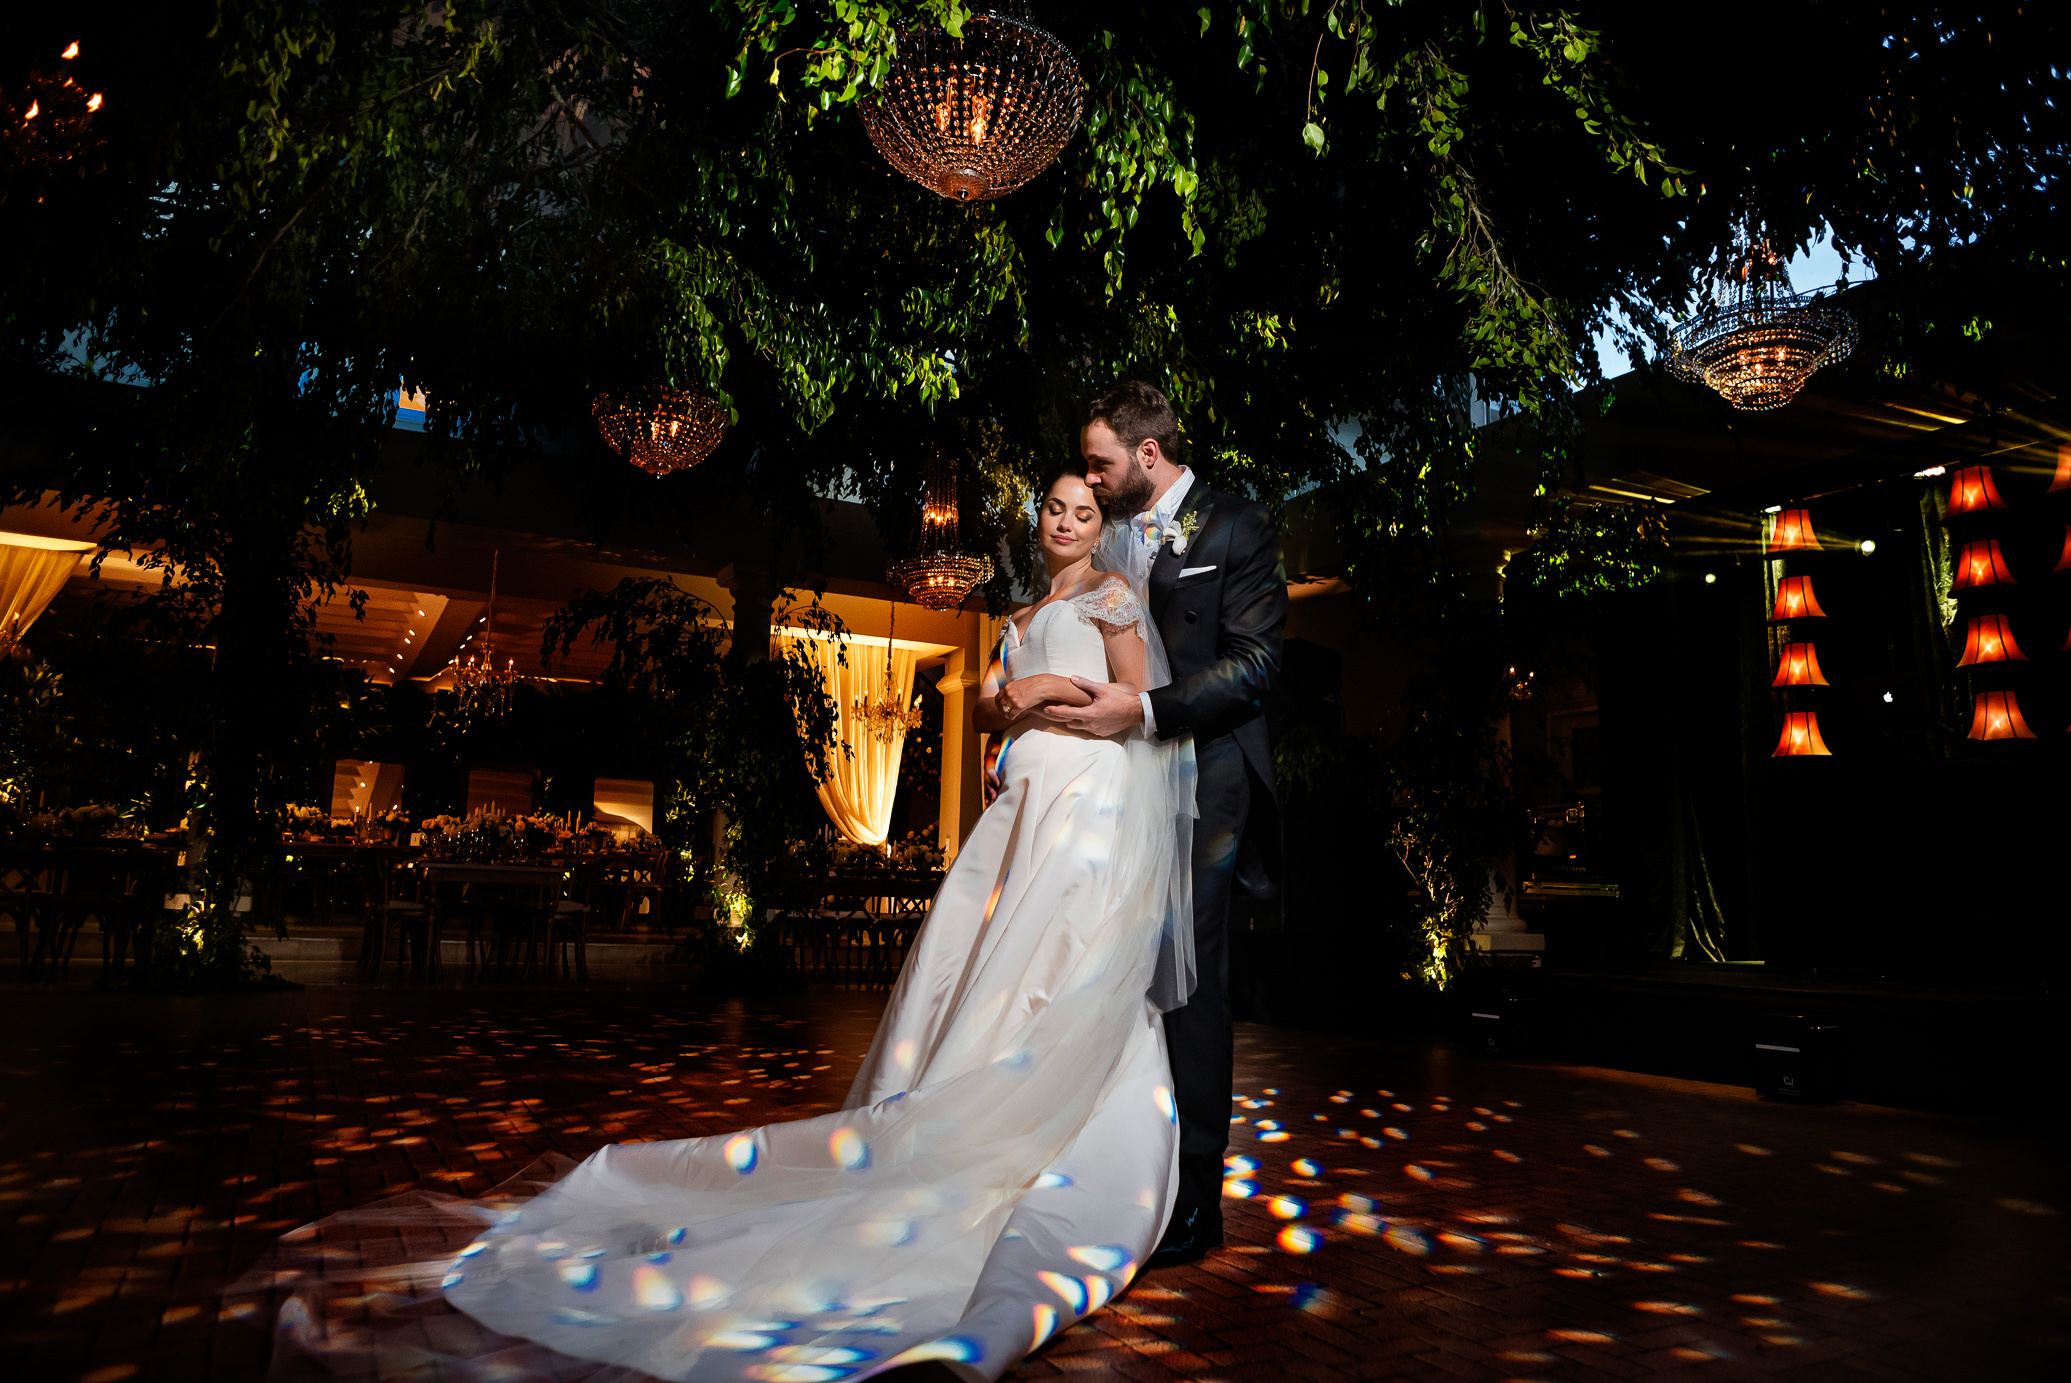 Boda Hacienda Santa Monica wedding venue